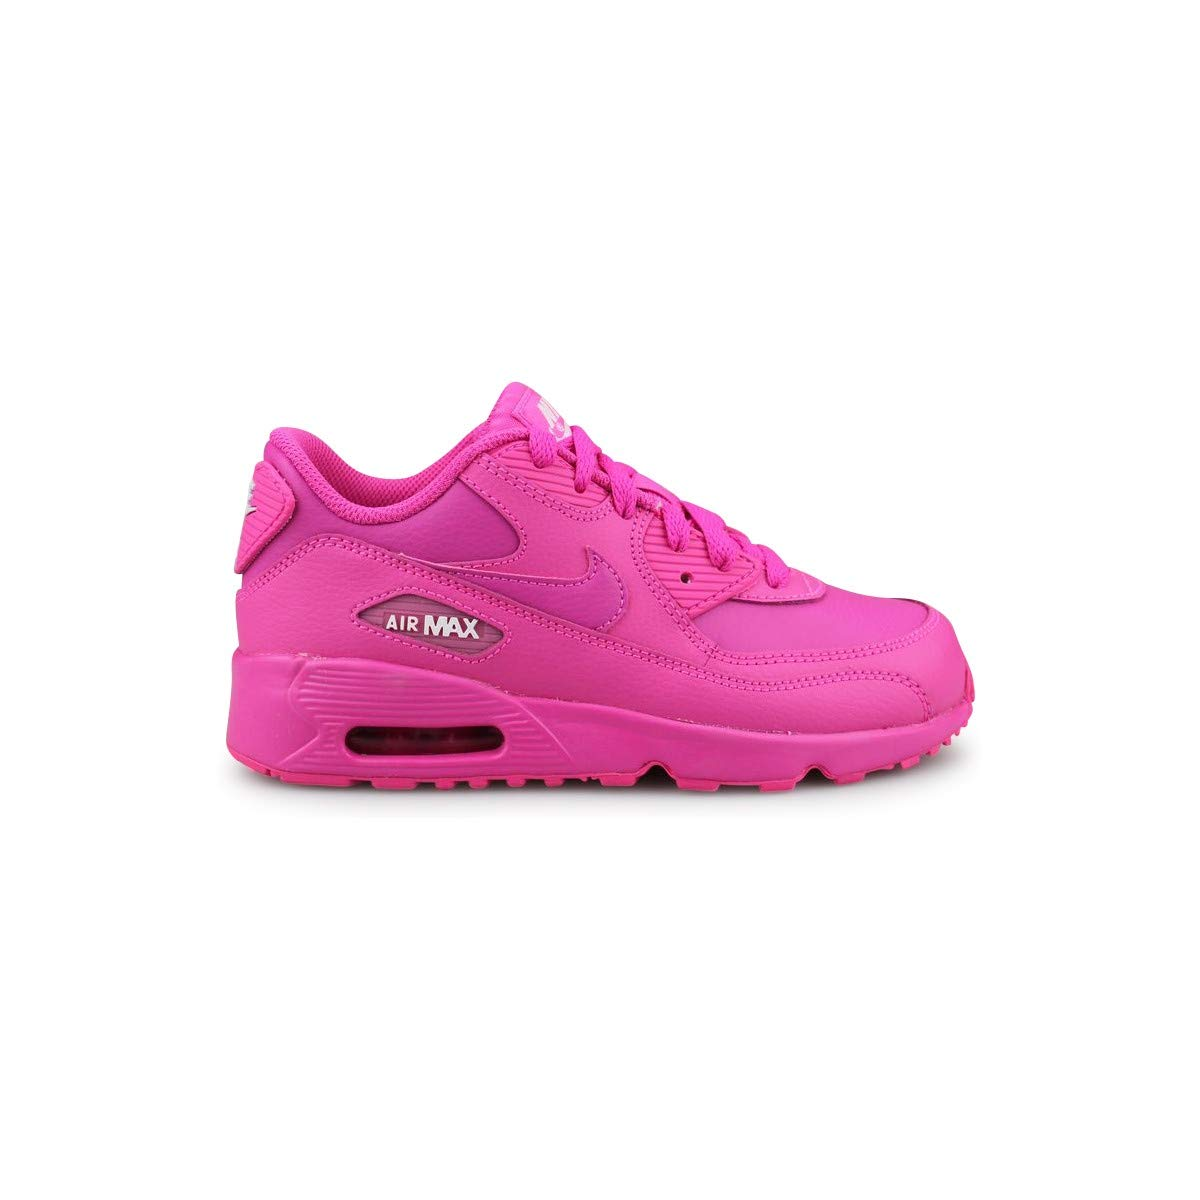 super popular eb1ca 91c2f Nike Air Max 90 LTR (PS), Chaussures dAthlétisme Fille